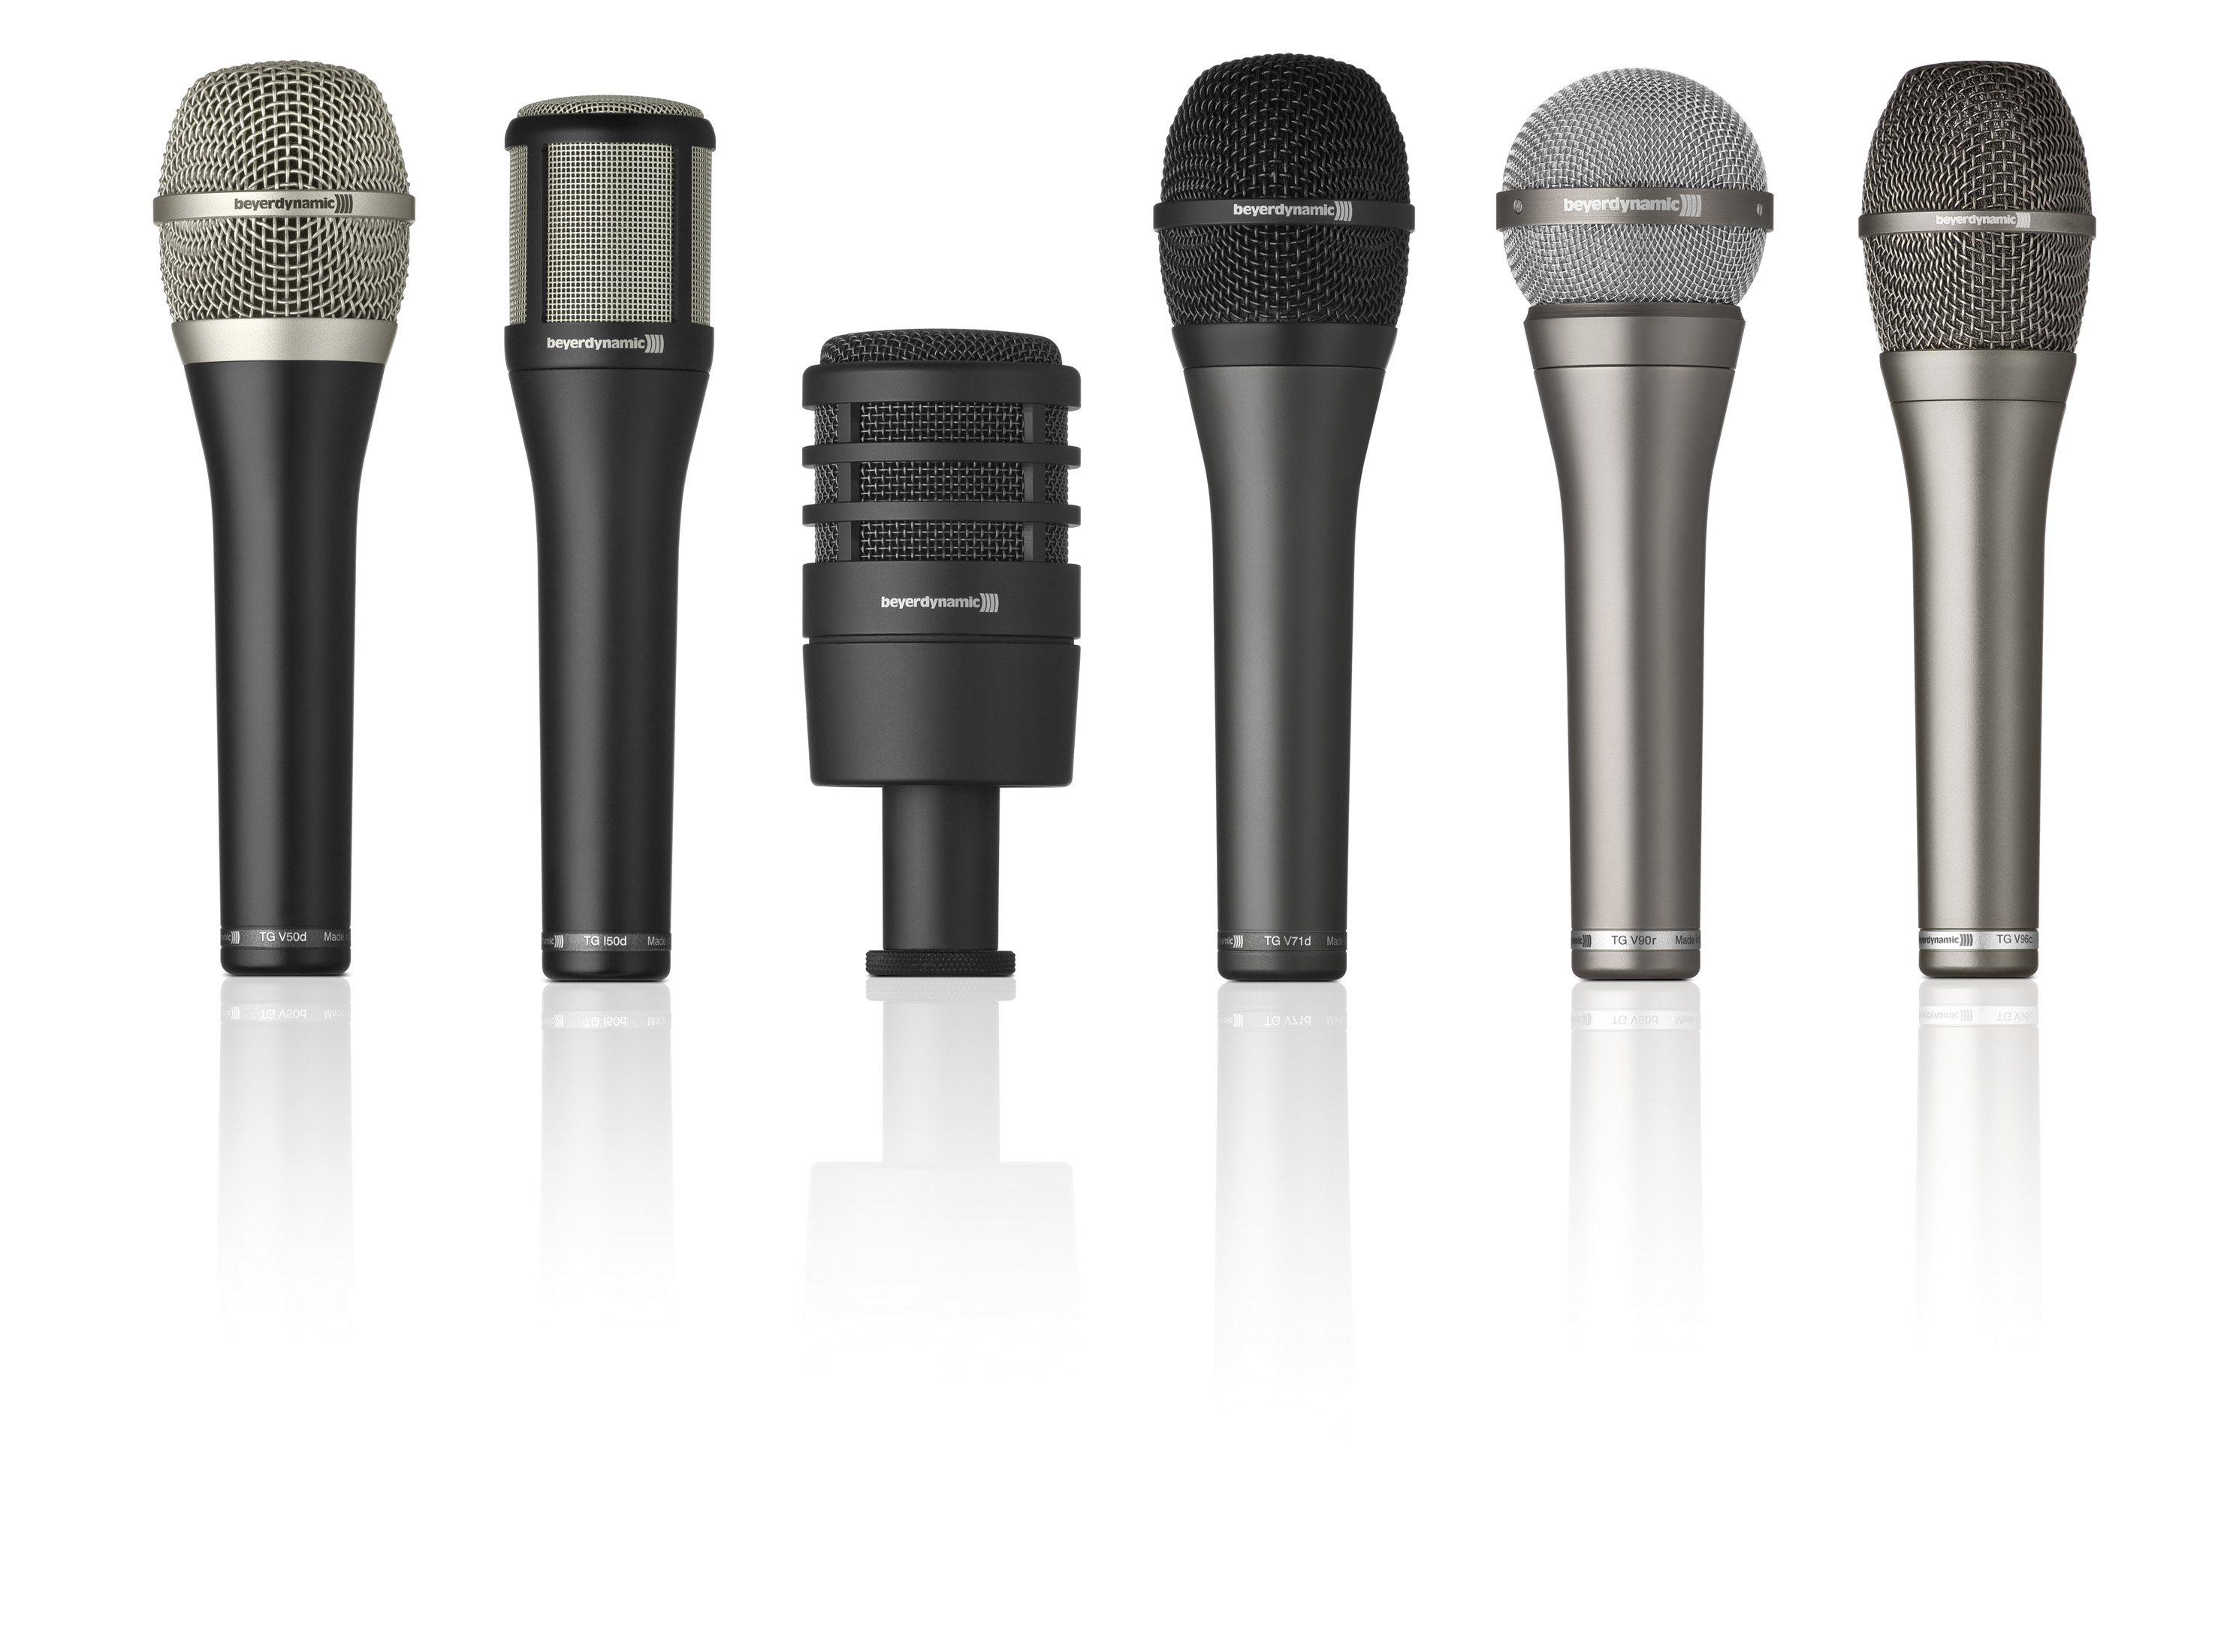 Wiring Diagram Shure Sm58 Professional Microphone - The Best Wiring ...